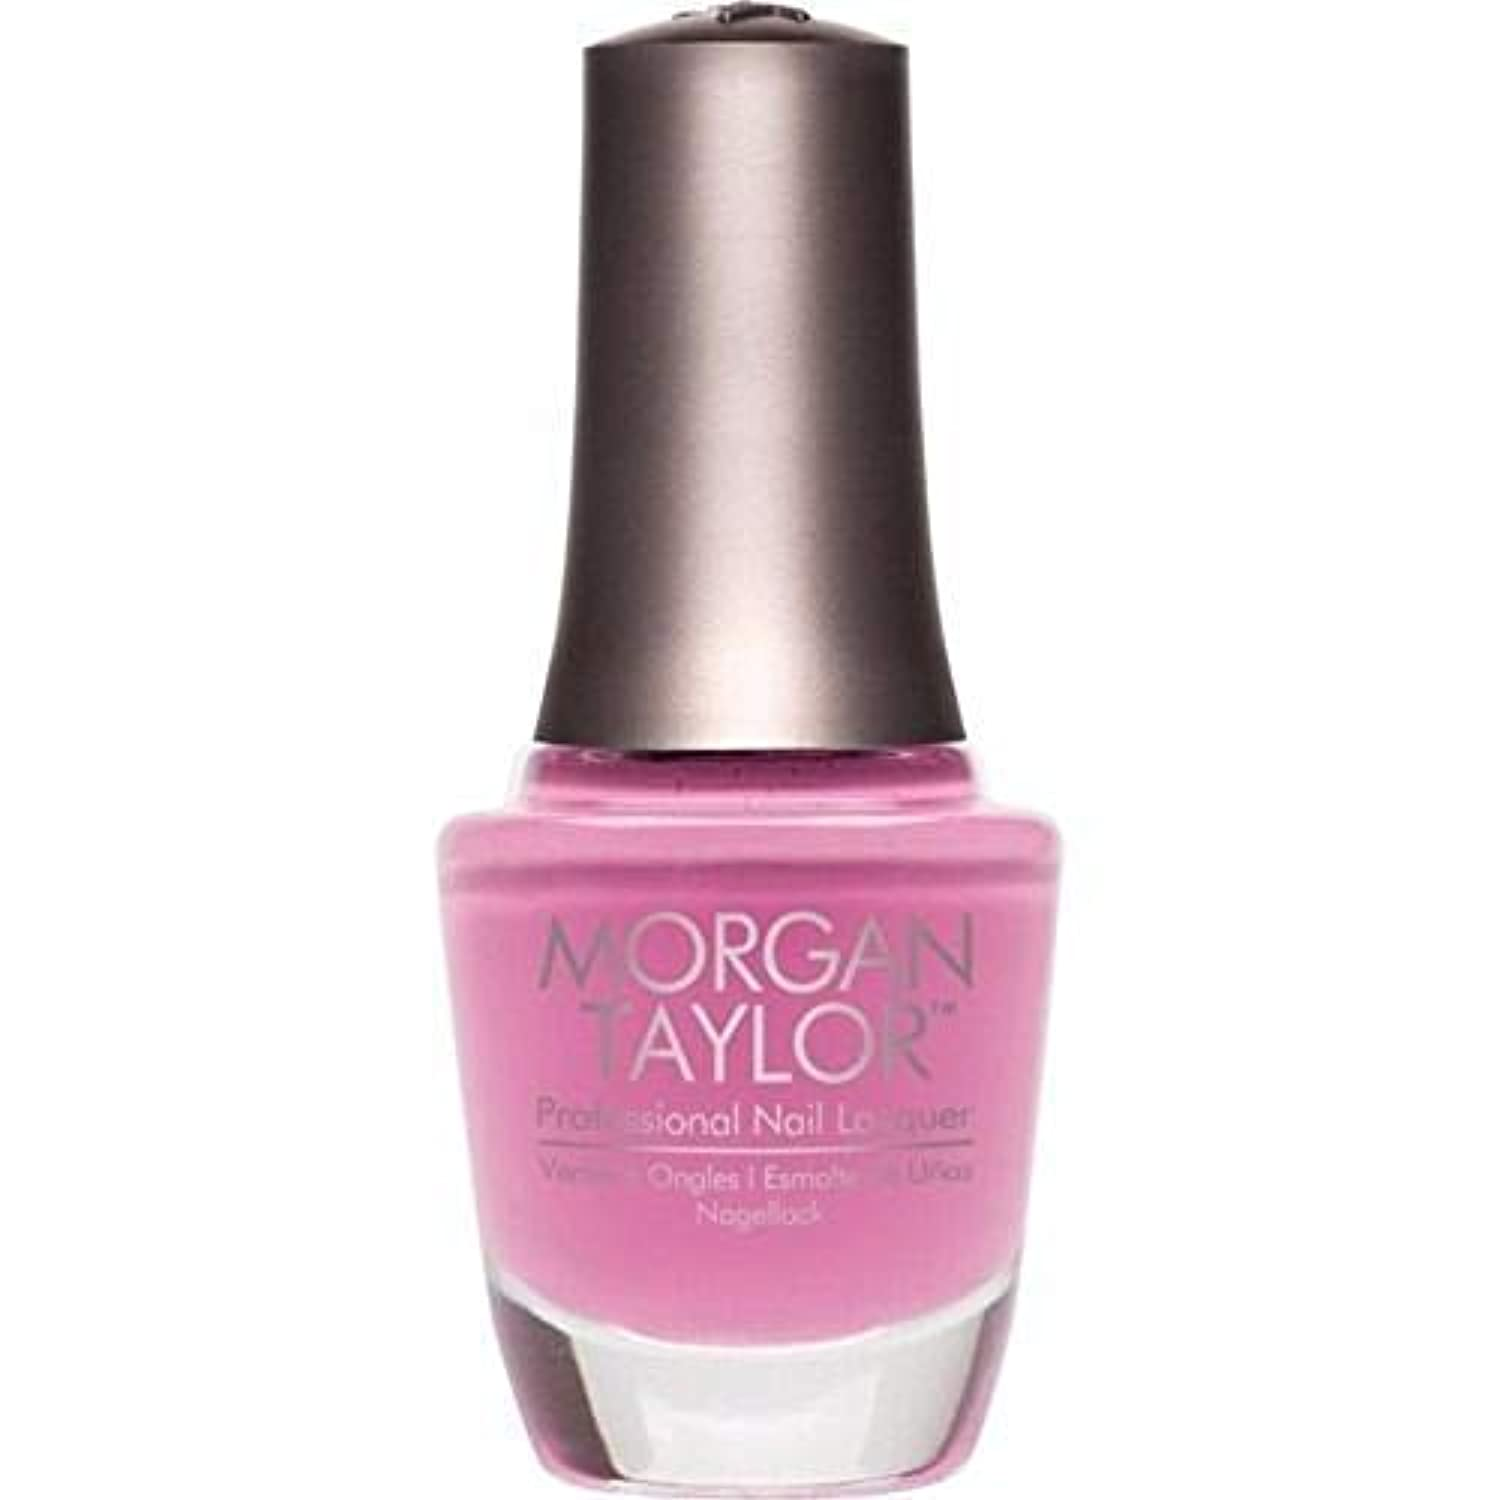 Morgan Taylor - Professional Nail Lacquer - Look at You, Pink-achu! - 15 mL / 0.5oz